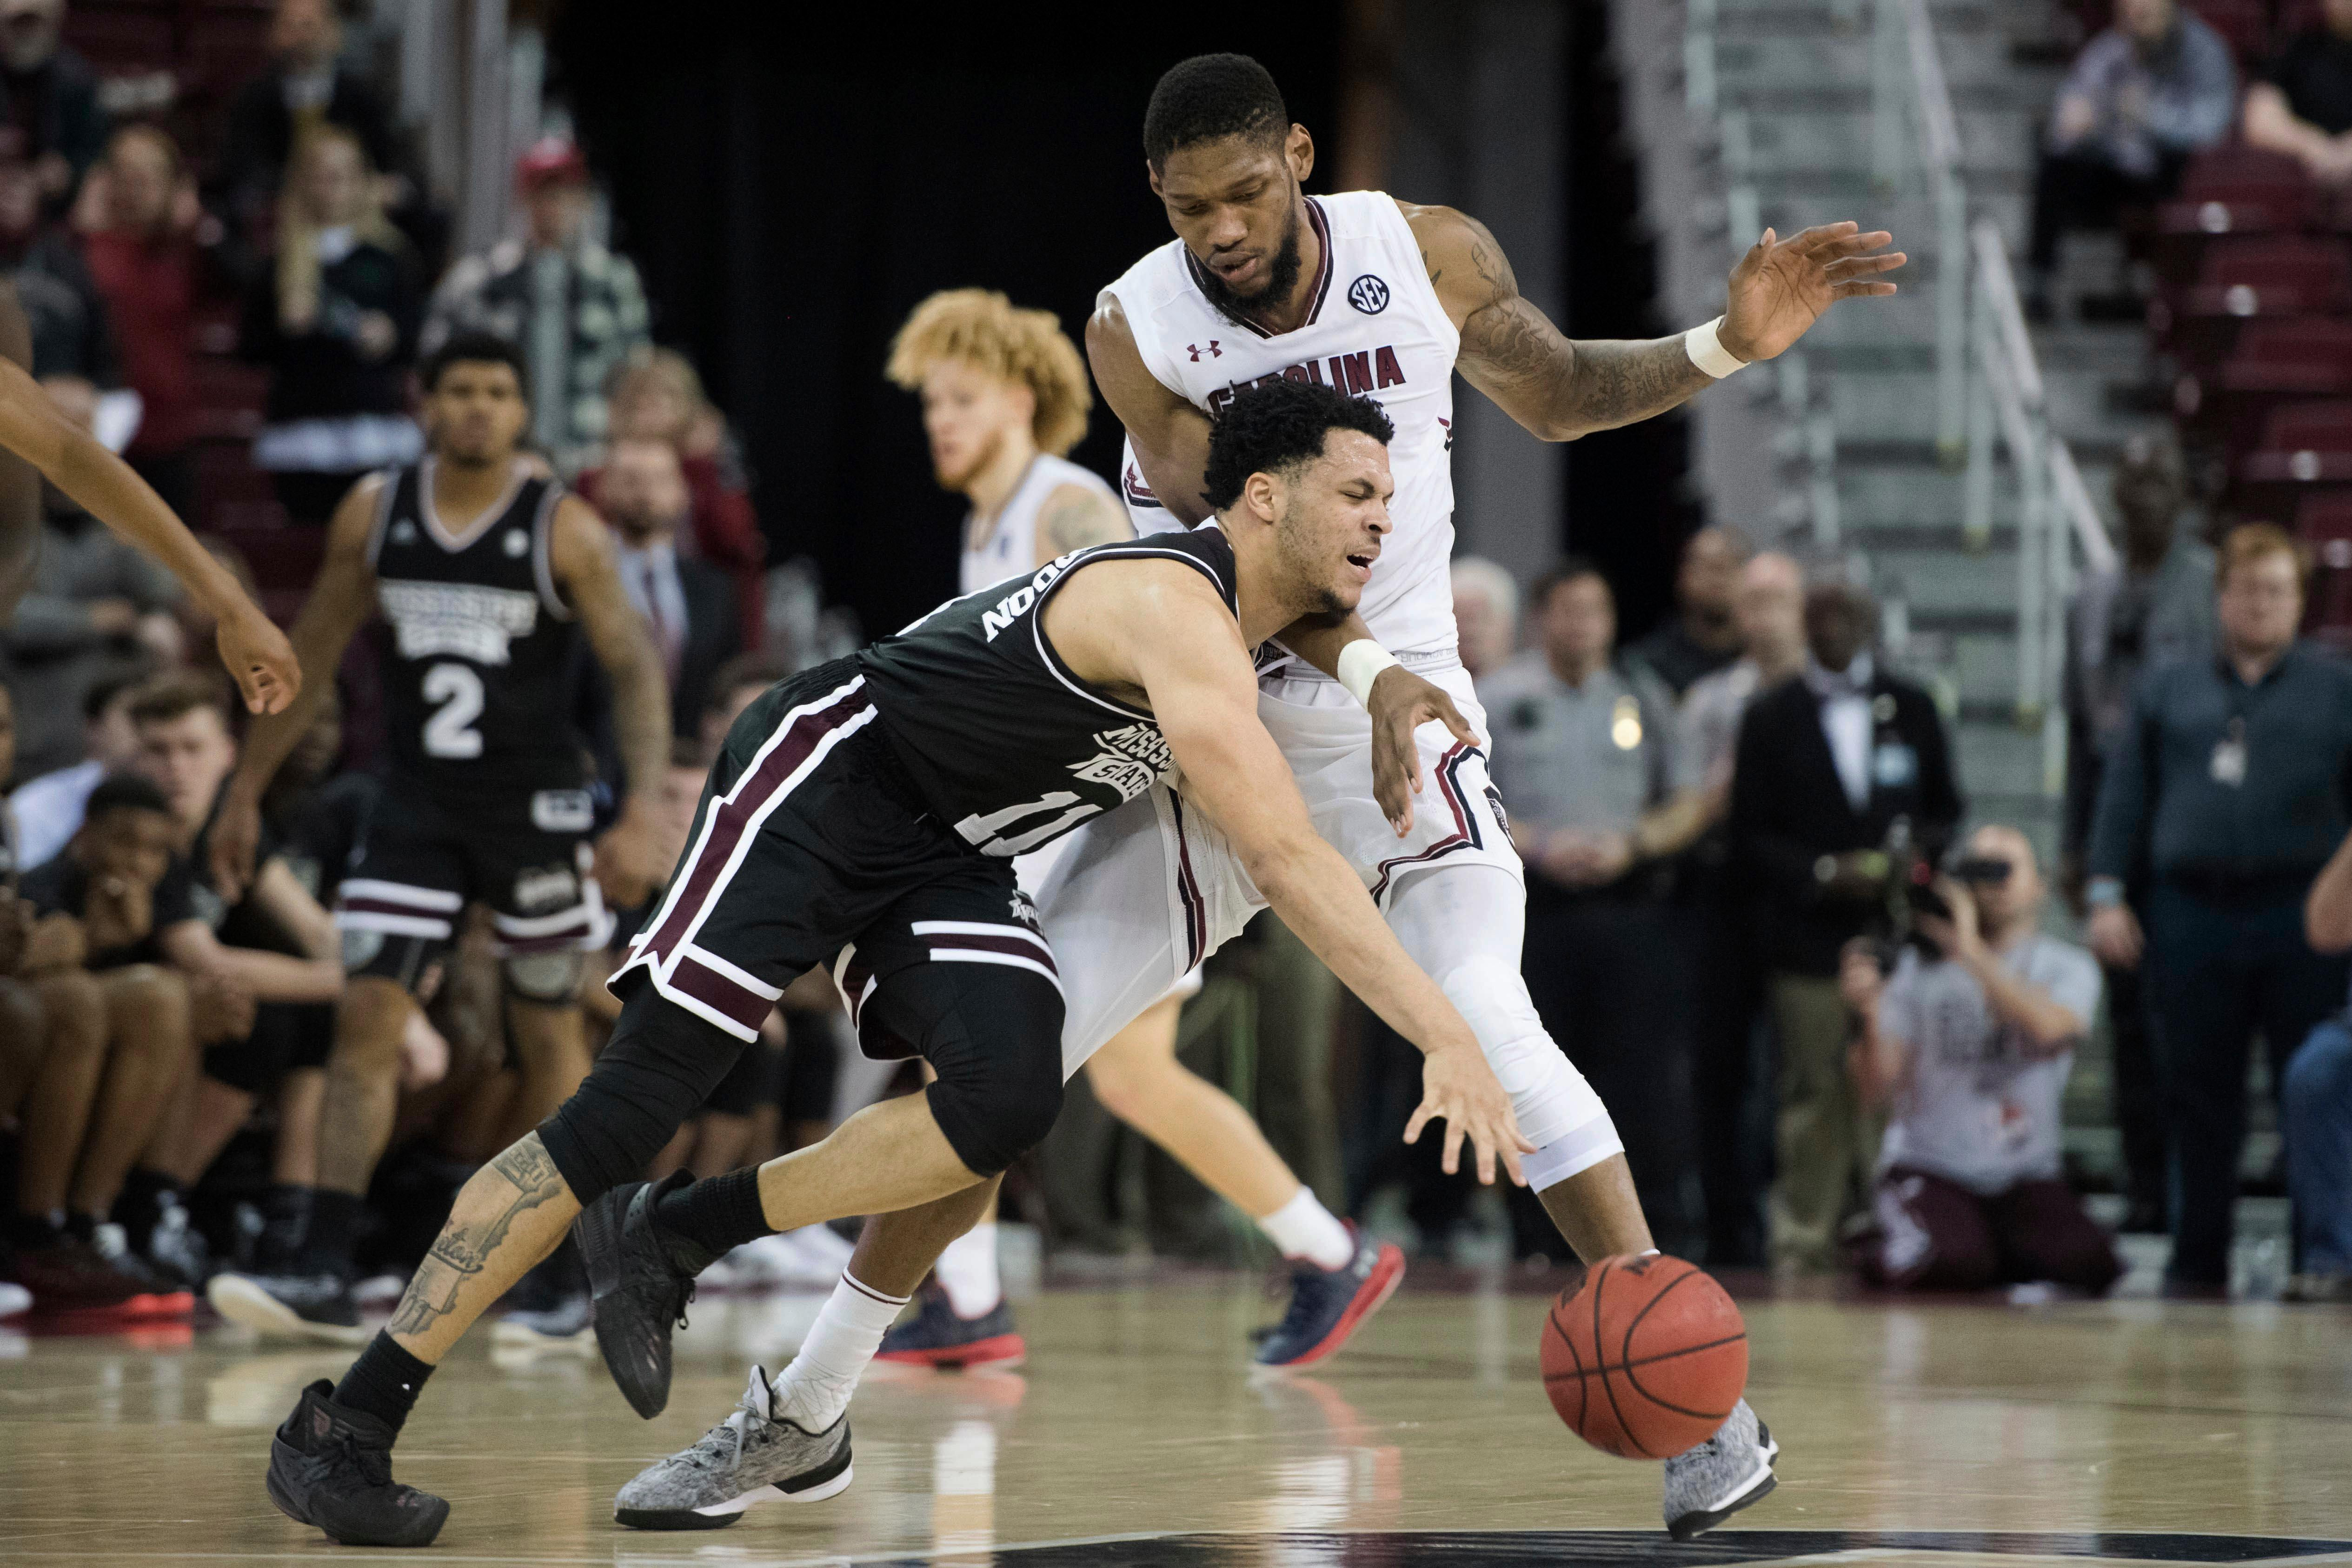 Mississippi State guard Quinndary Weatherspoon (11) is defended by South Carolina forward Chris Silva during the second half of an NCAA college basketball game Tuesday, Jan. 8, 2019, in Columbia, S.C. South Carolina won 87-82. (AP Photo/Sean Rayford)